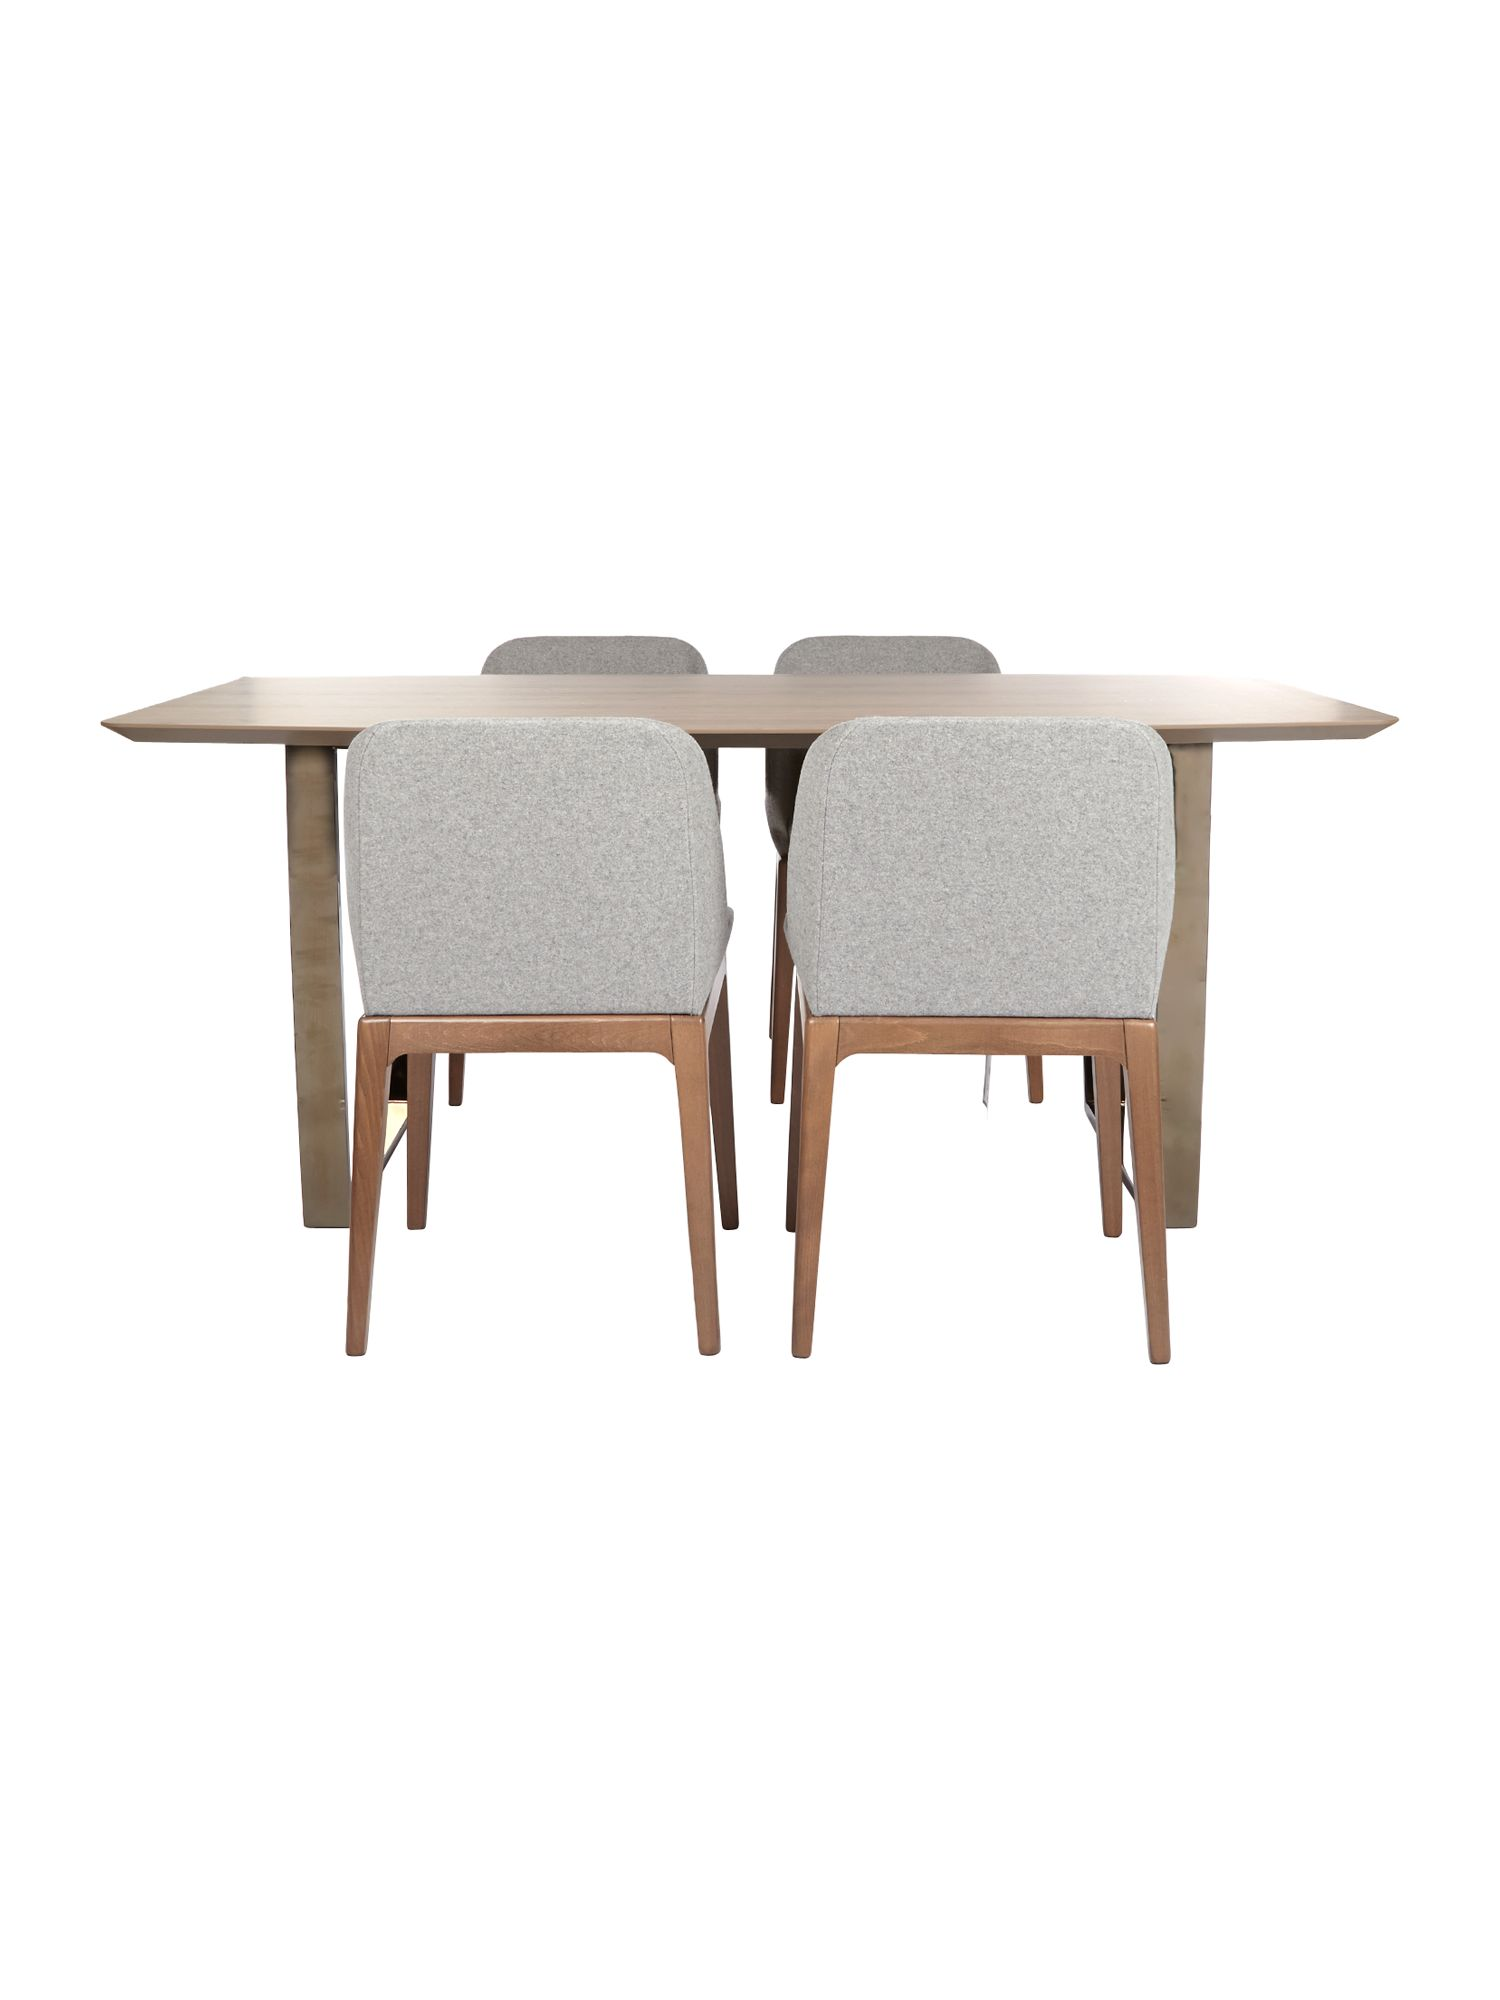 Lazio dining furniture range